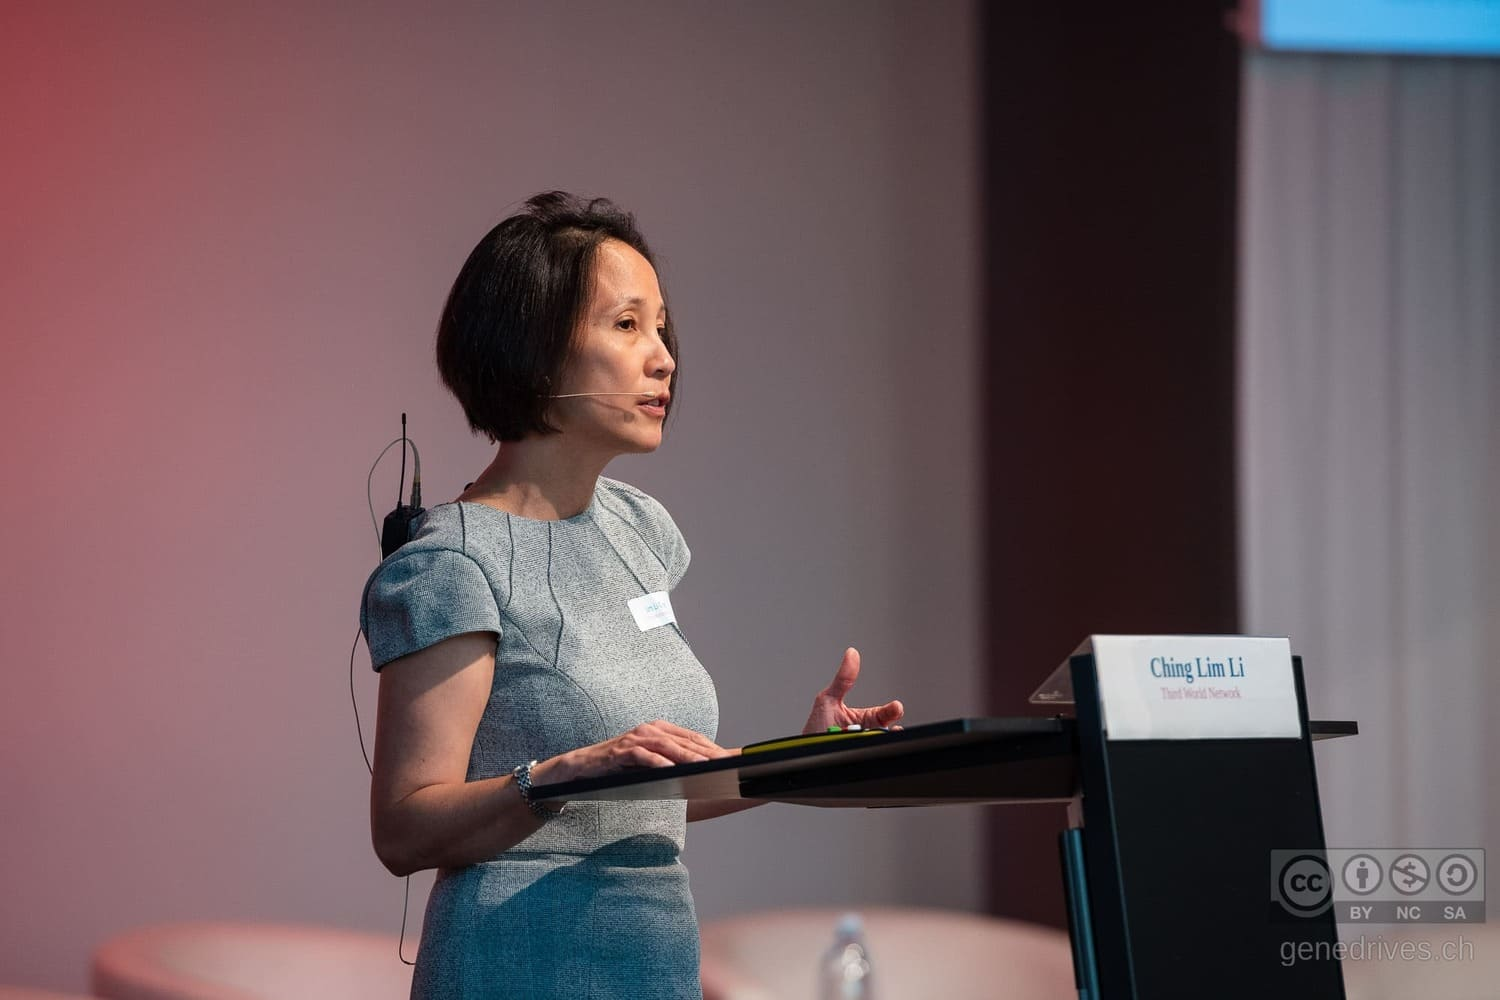 Lim Li Ching speaks at the GeneDrive Symposium 2019.